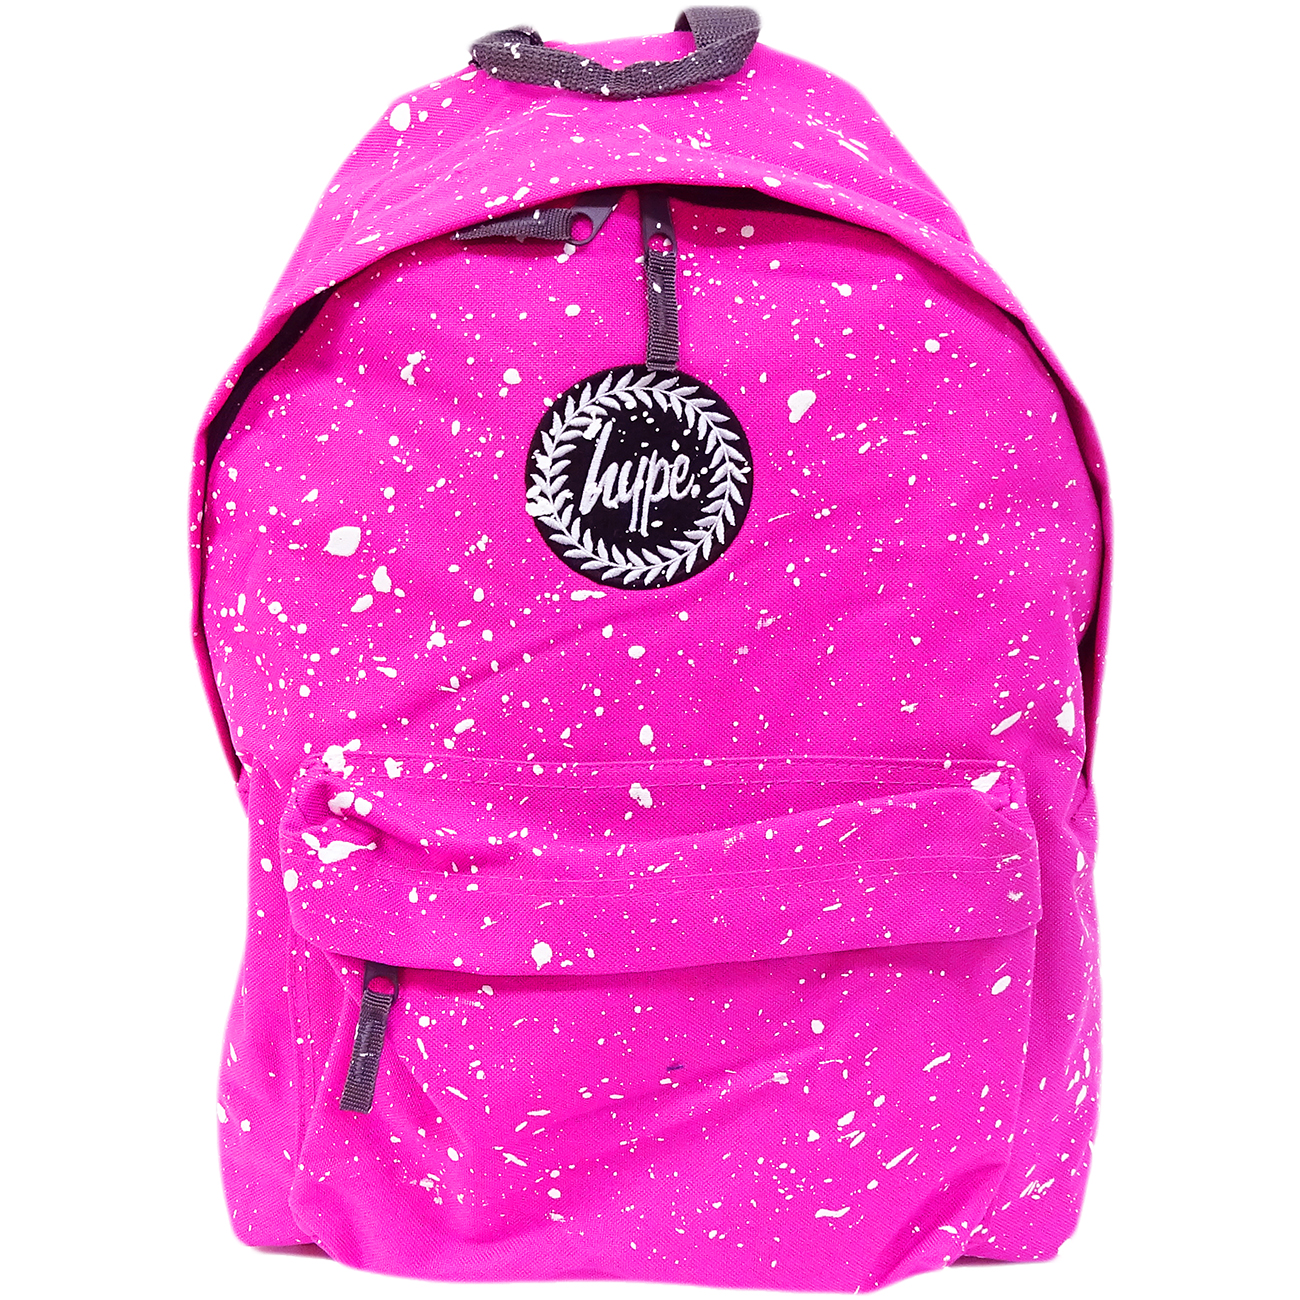 Hype Backpack Speckled Fuscia with White